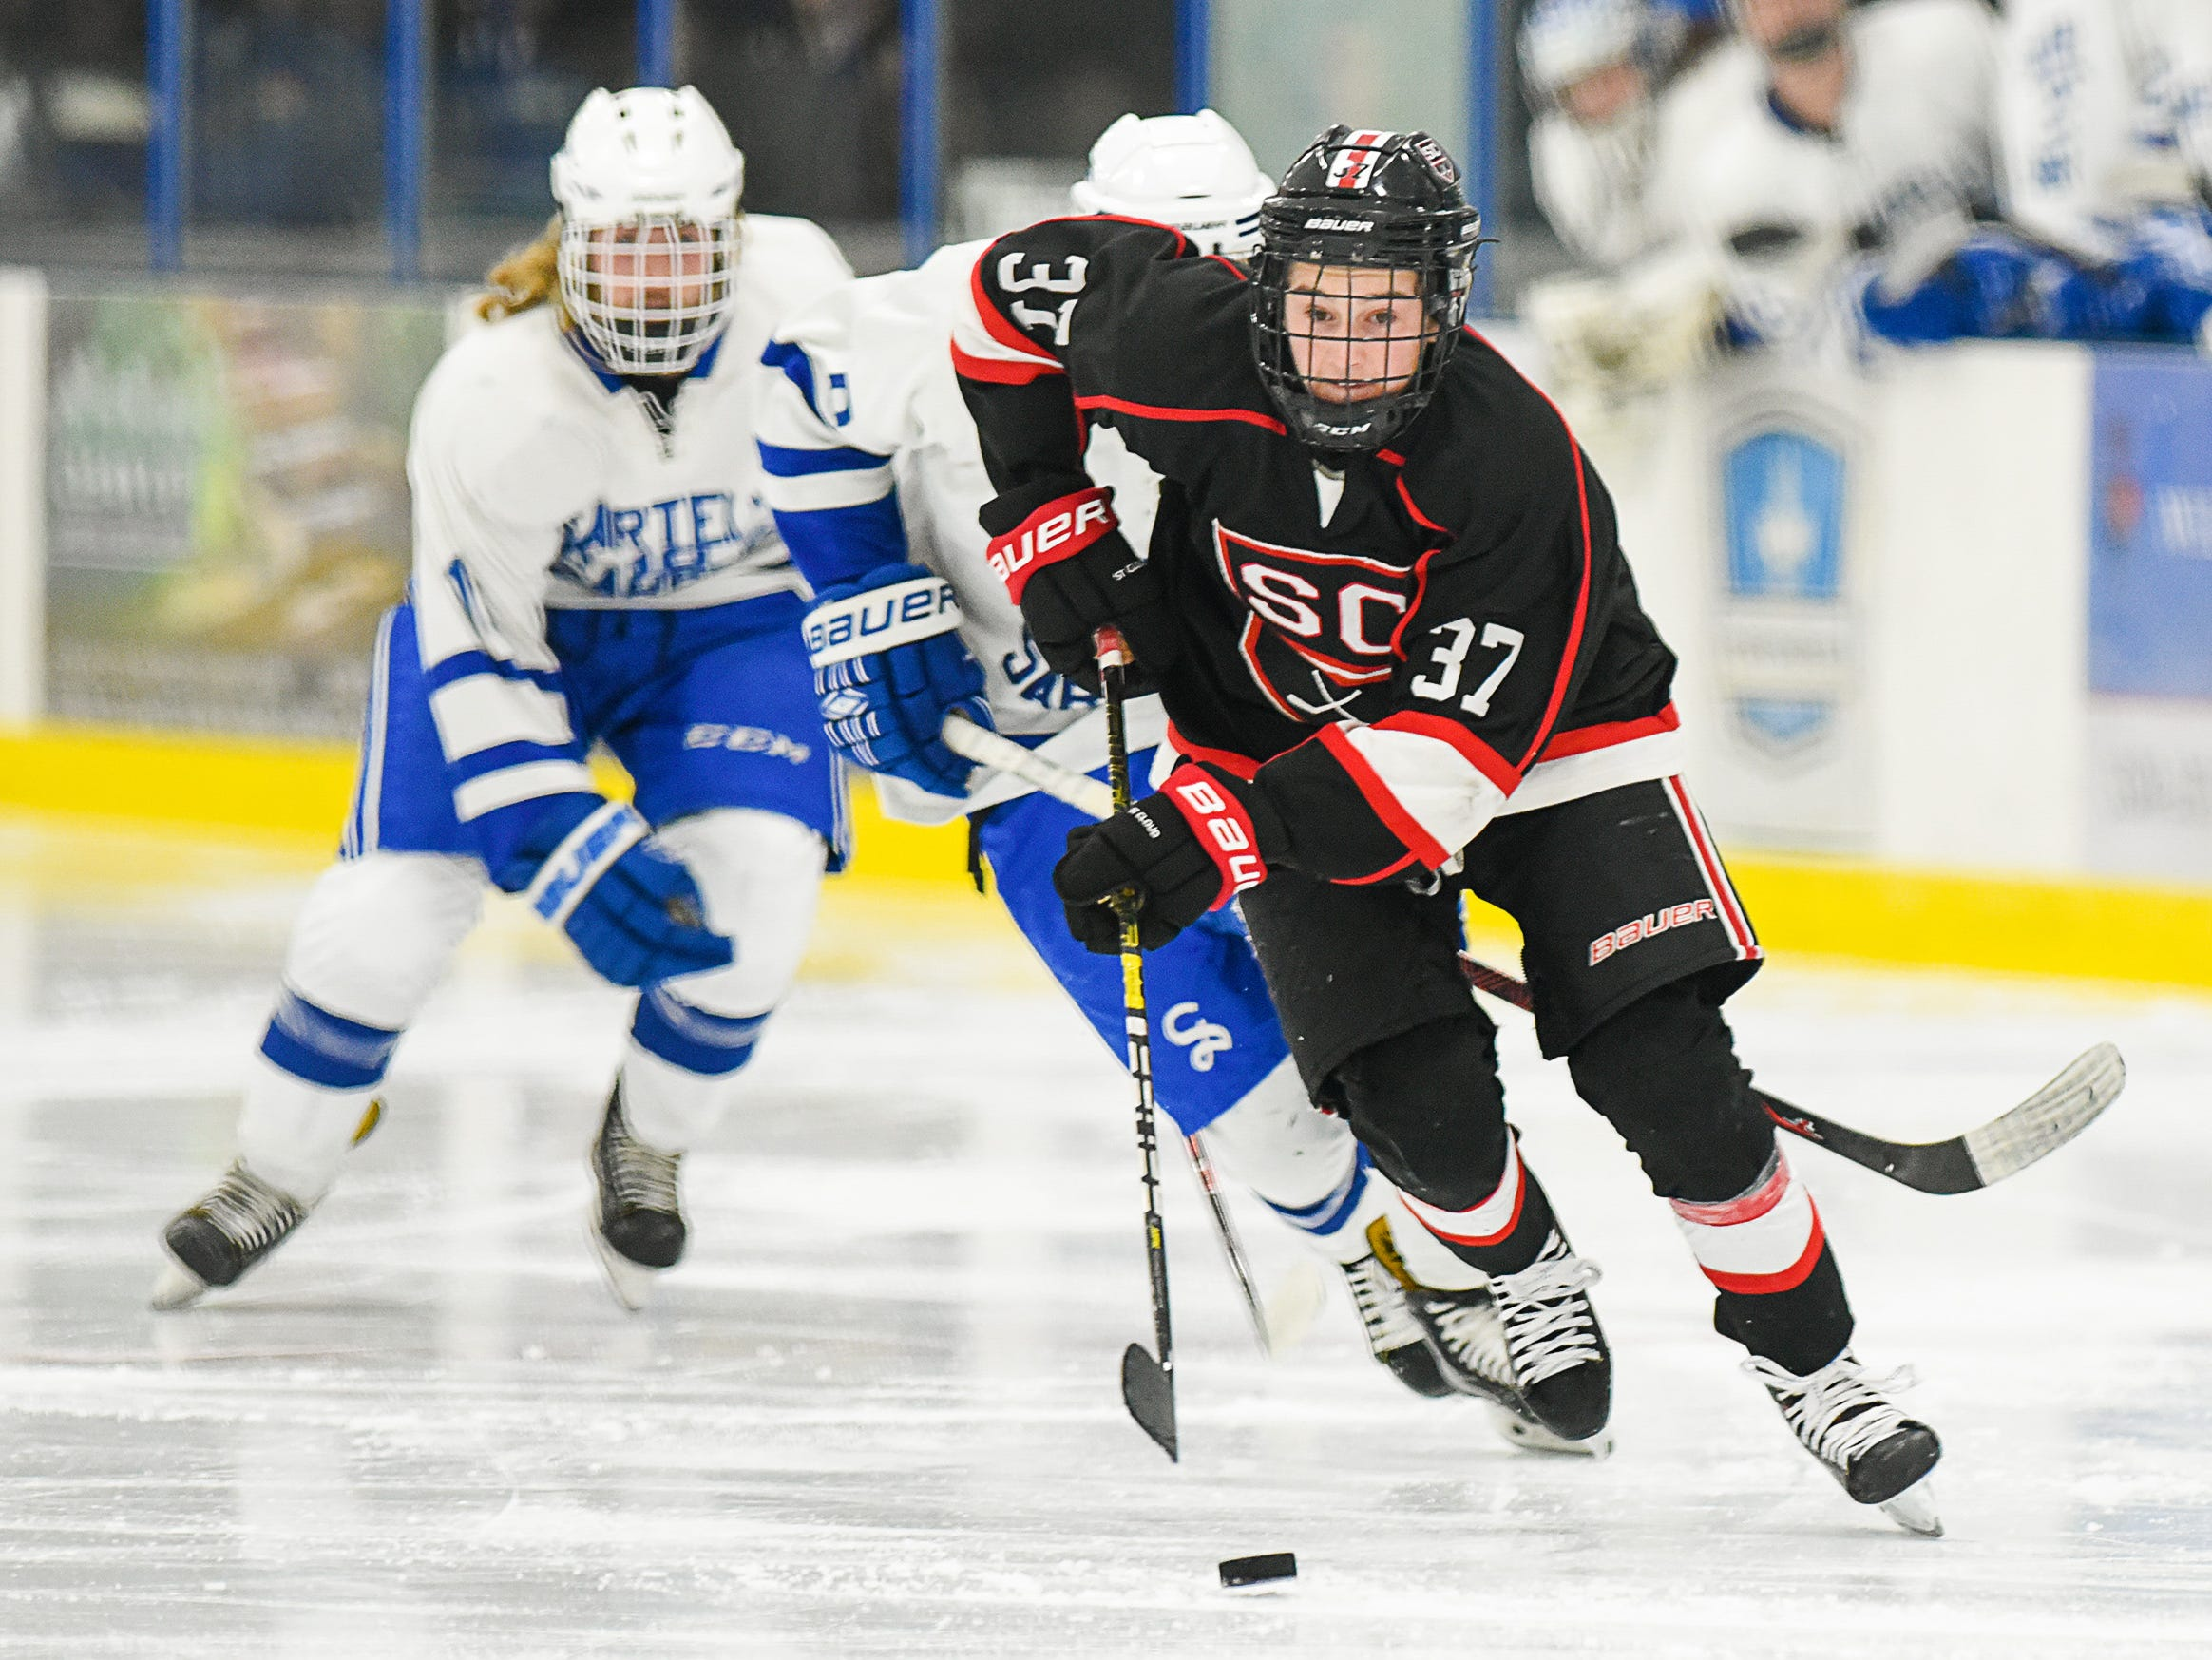 St. Cloud's Luke Johnson skates toward St. Cloud's goal during the second period Tuesday, Dec. 18, at the Bernick's Arena in Sartell.